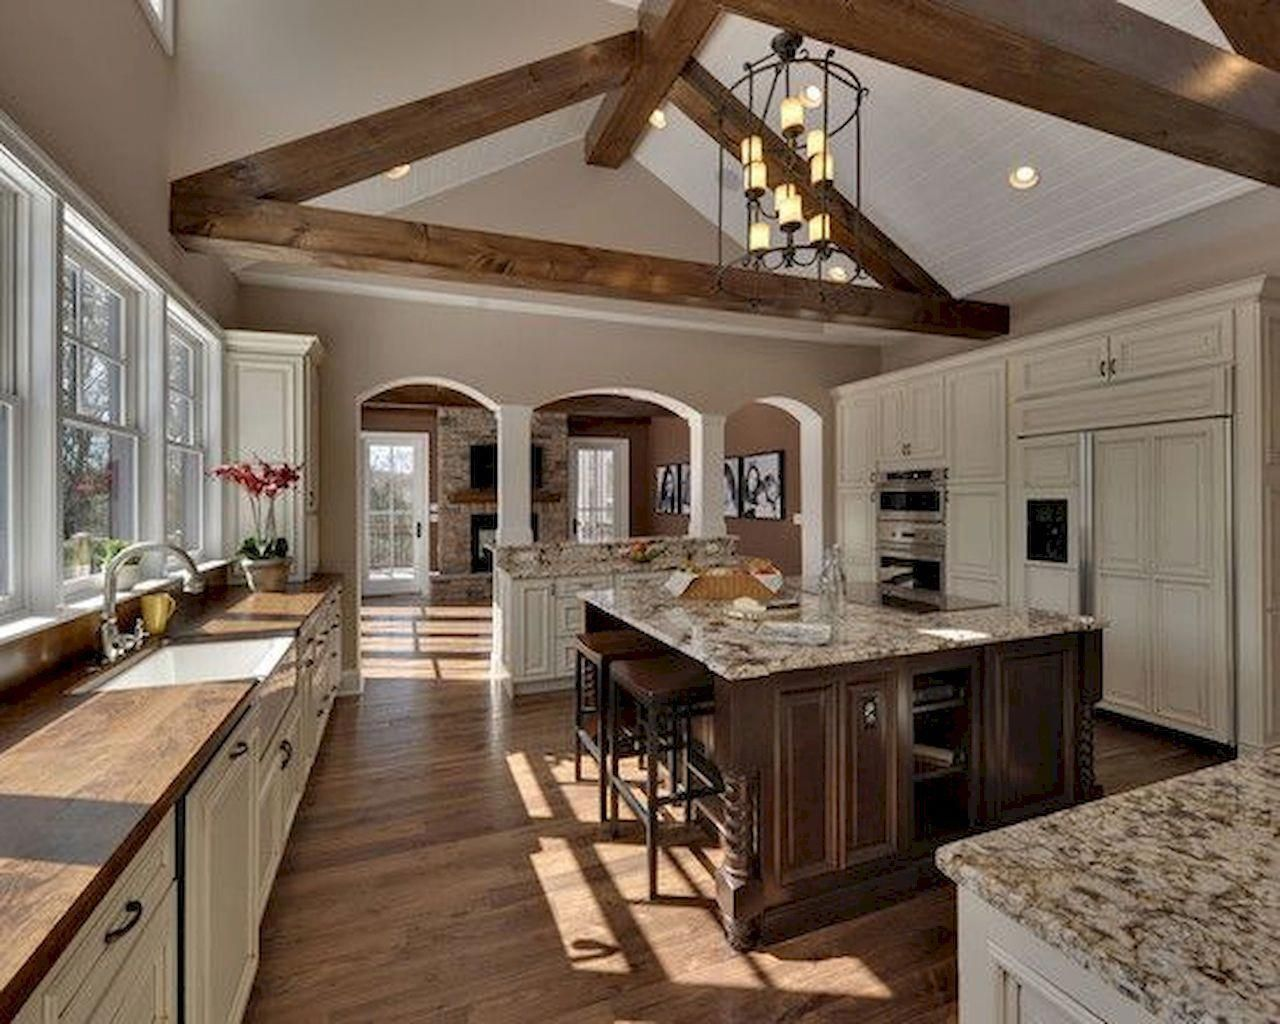 Best Decoratingkitchen In 2019 Vaulted Ceiling Kitchen Wood 400 x 300